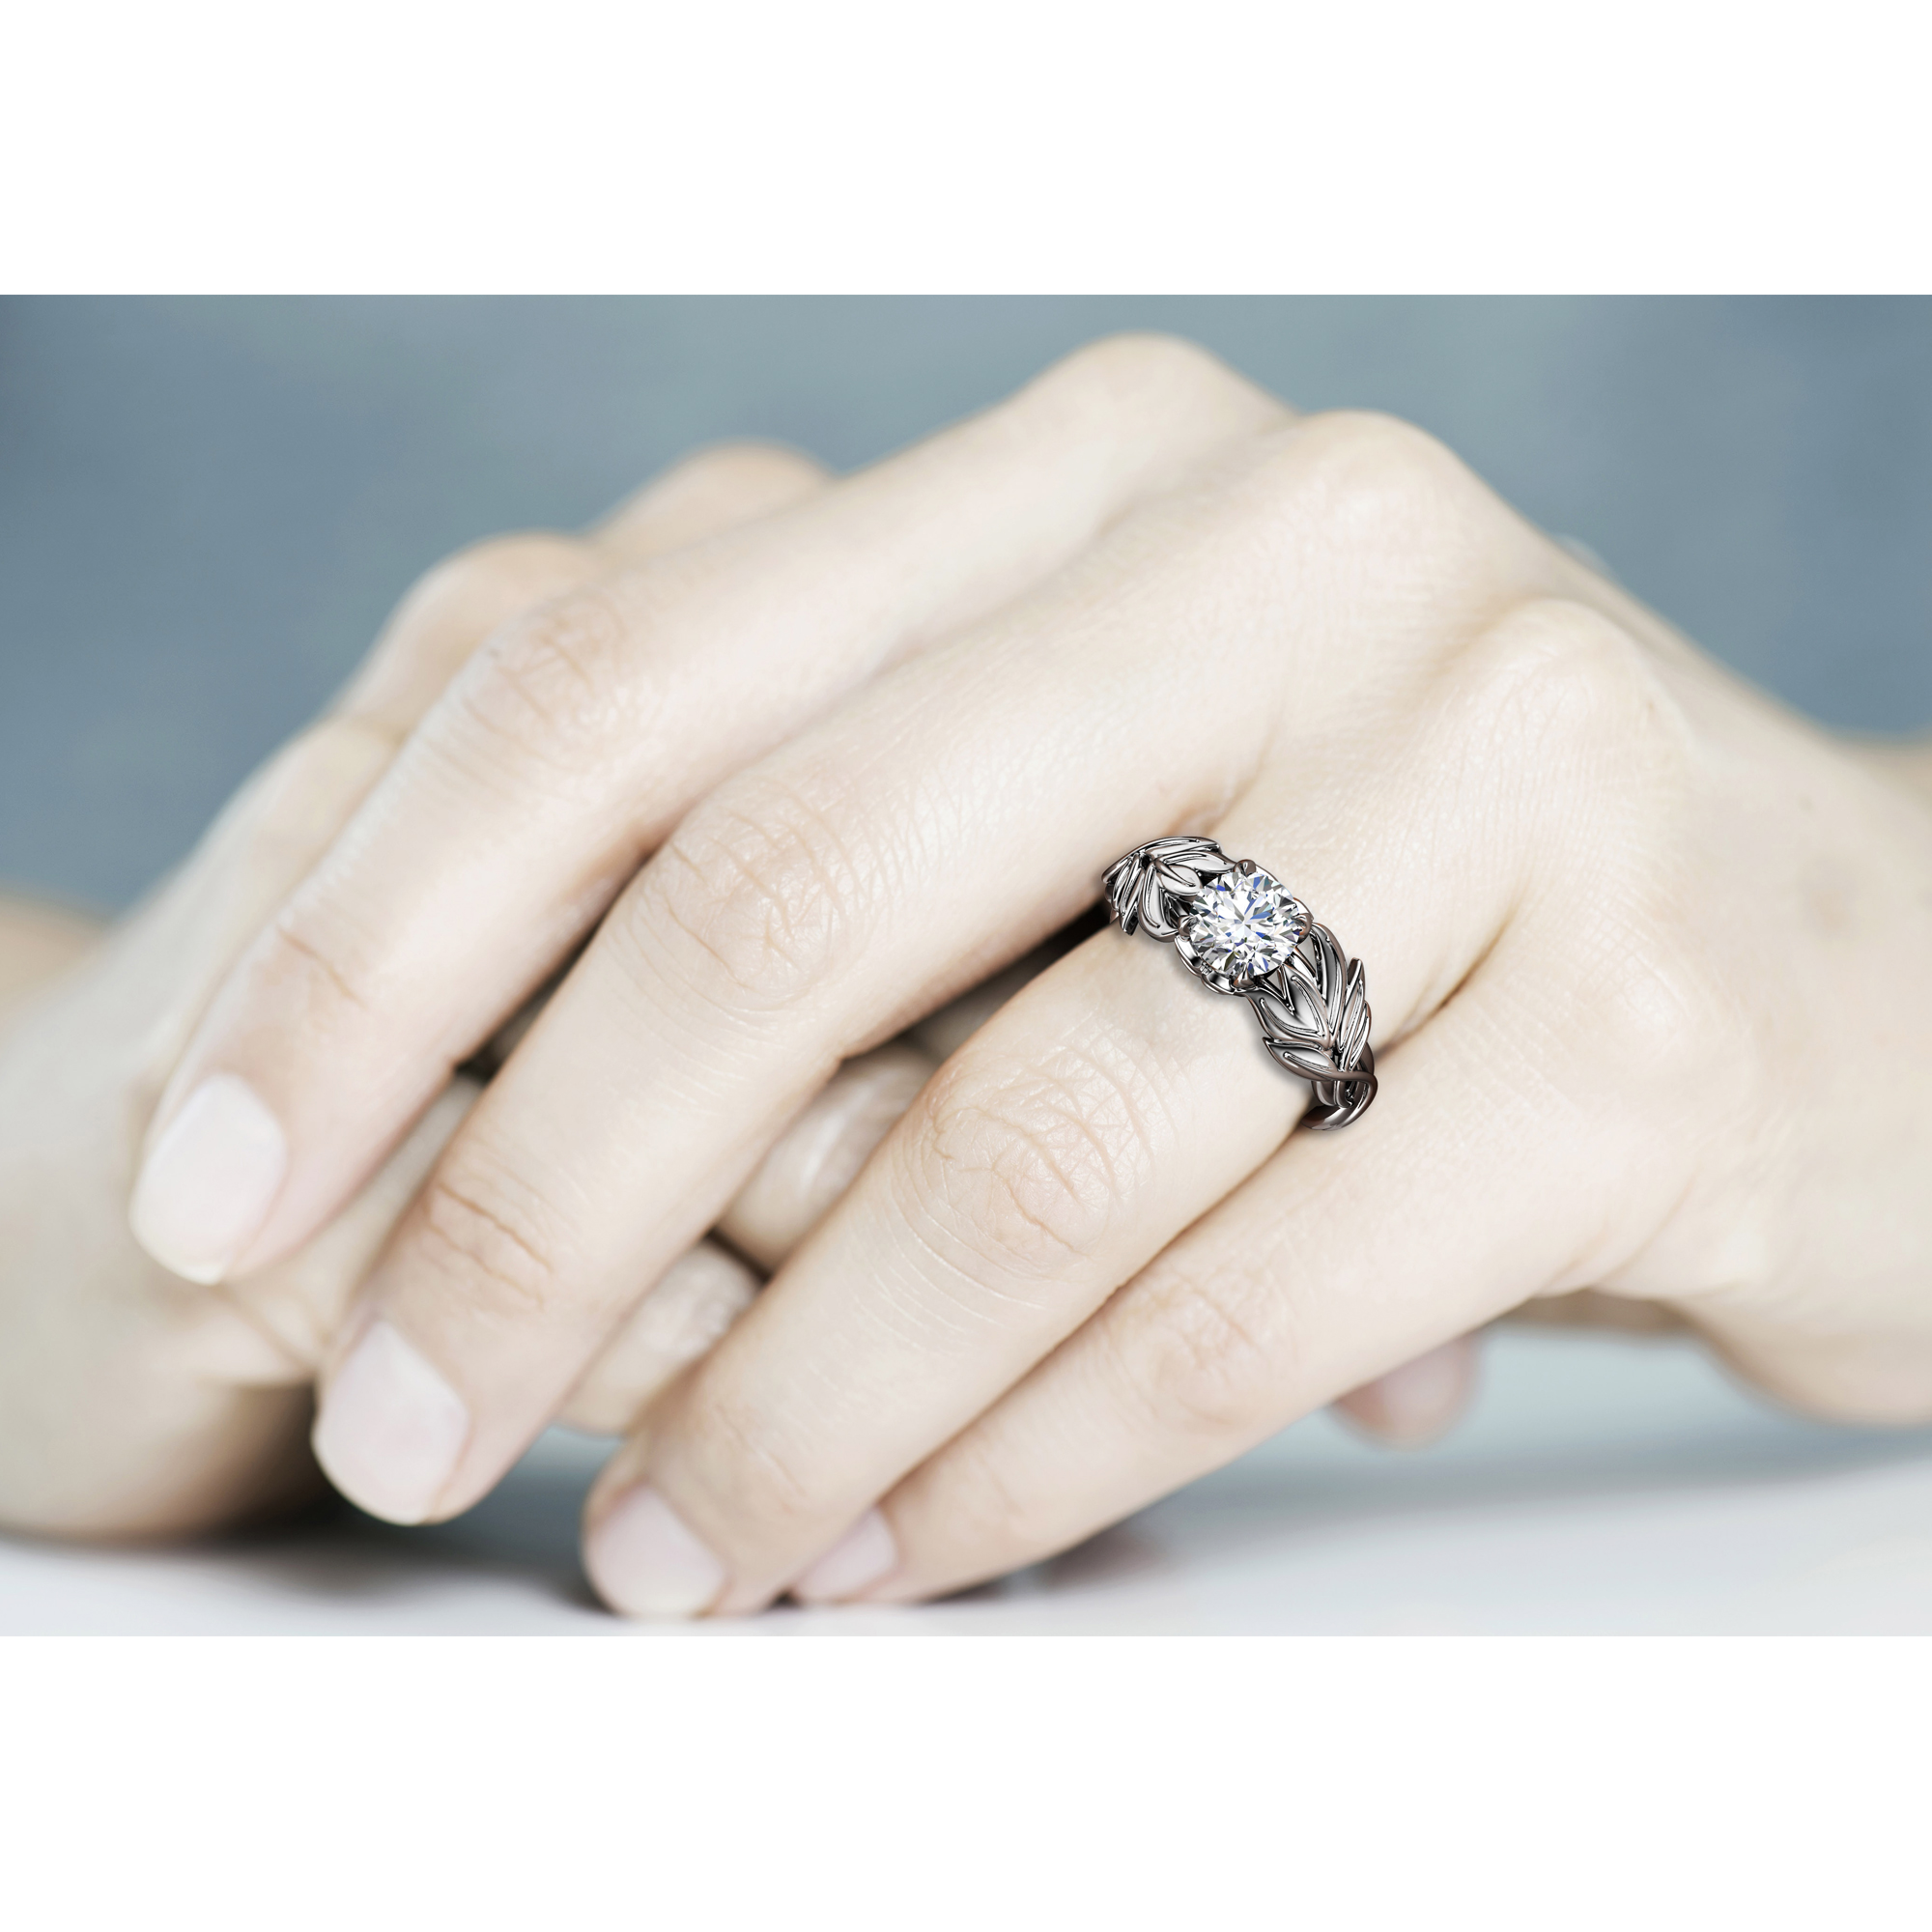 1 Carat Leaf Engagement Ring Forever One Moissanite Ring Solid White Gold Inspired by Nature Ring